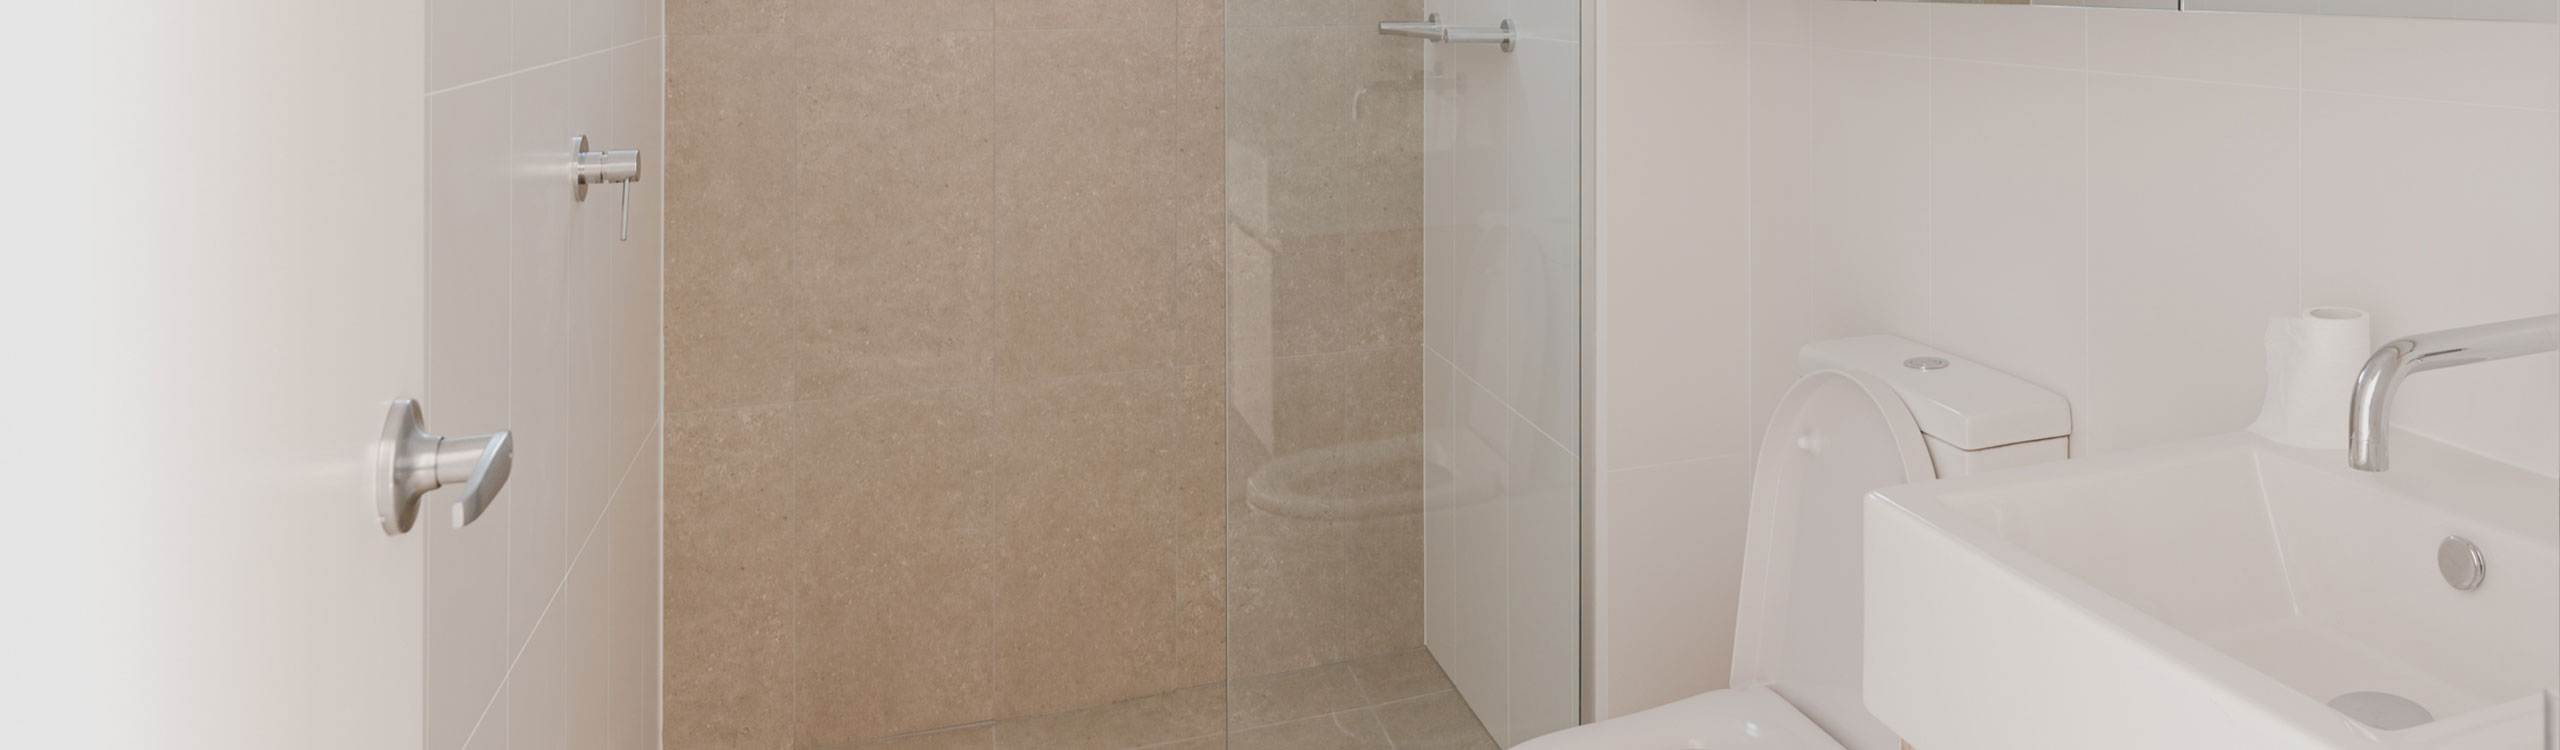 Frameless Shower Screen by Instyle Wardrobes